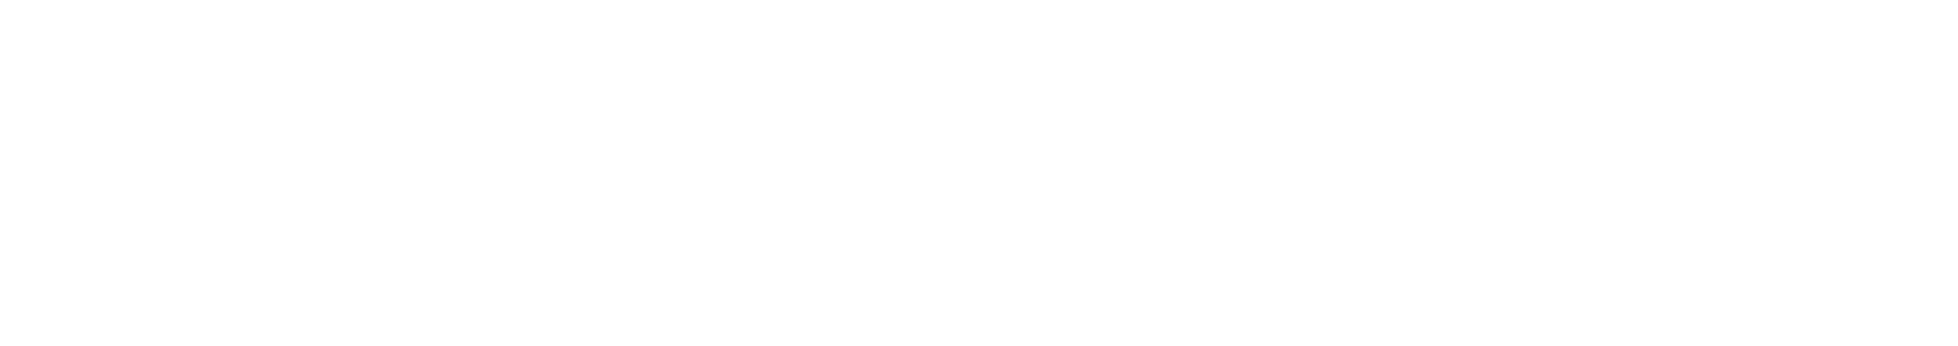 Center for Biodiversity Outcomes Logo